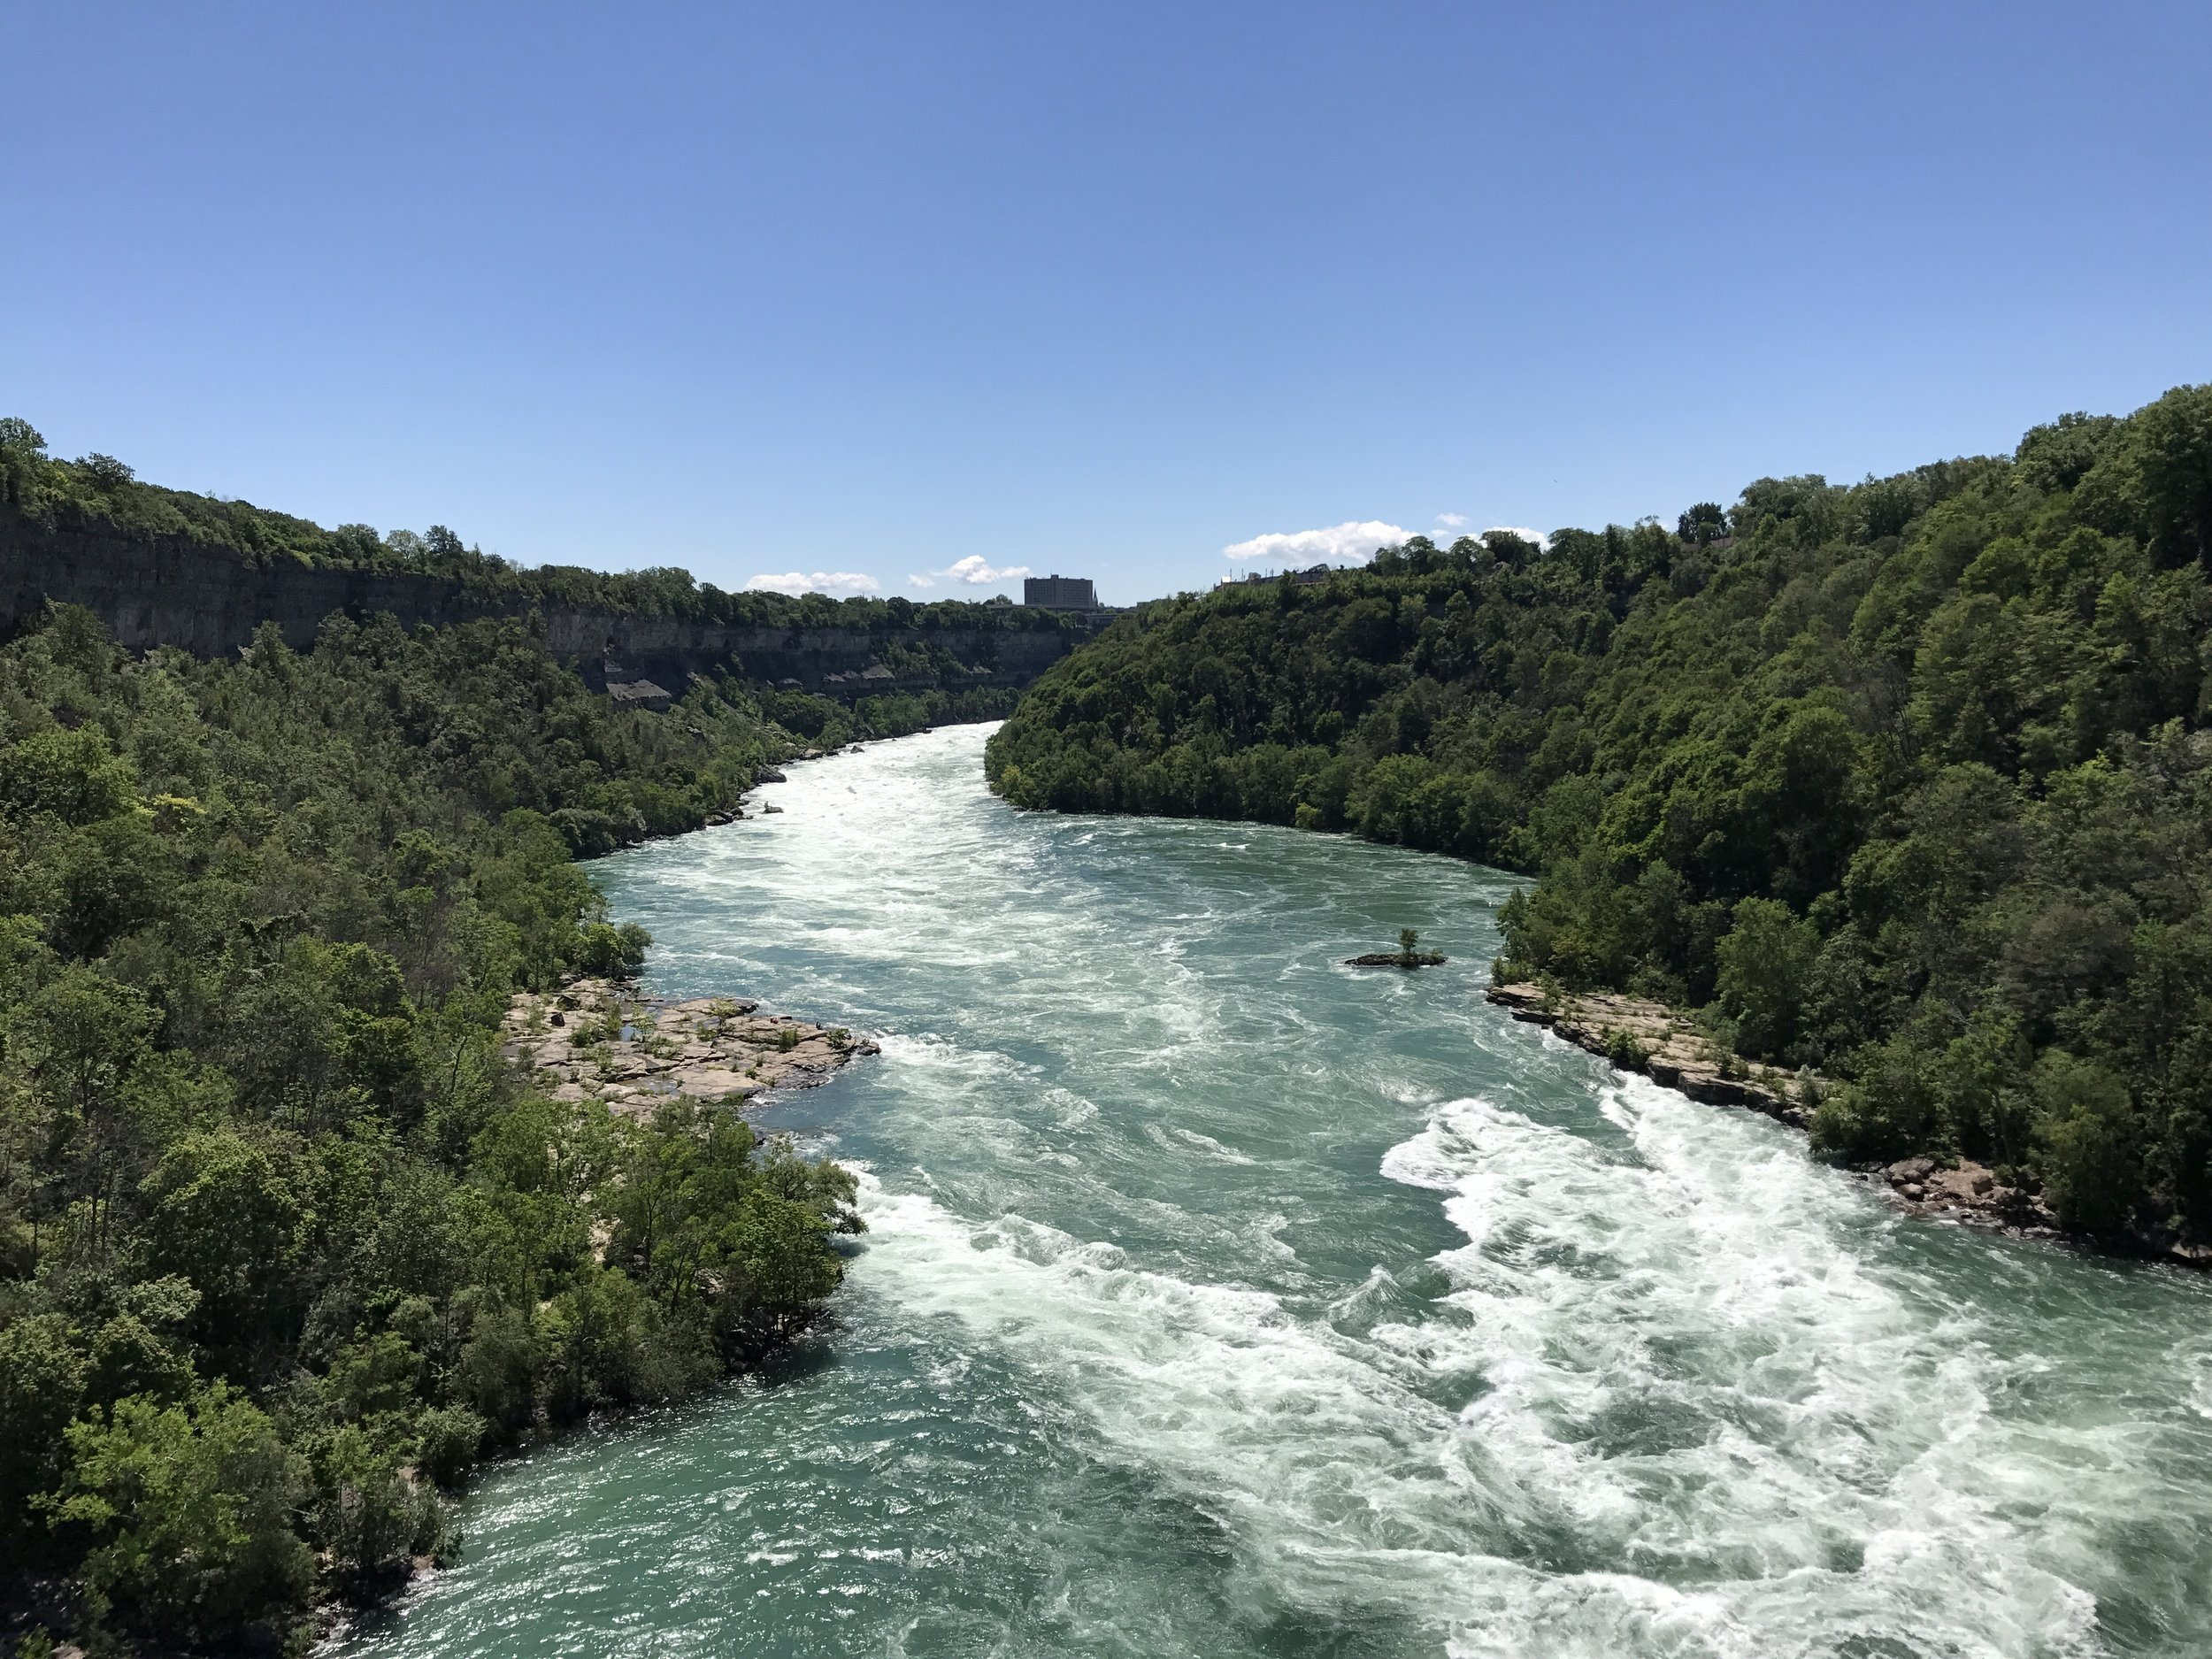 From the Aerocar, visitors have a great view of the Niagara River and Niagara Gorge.